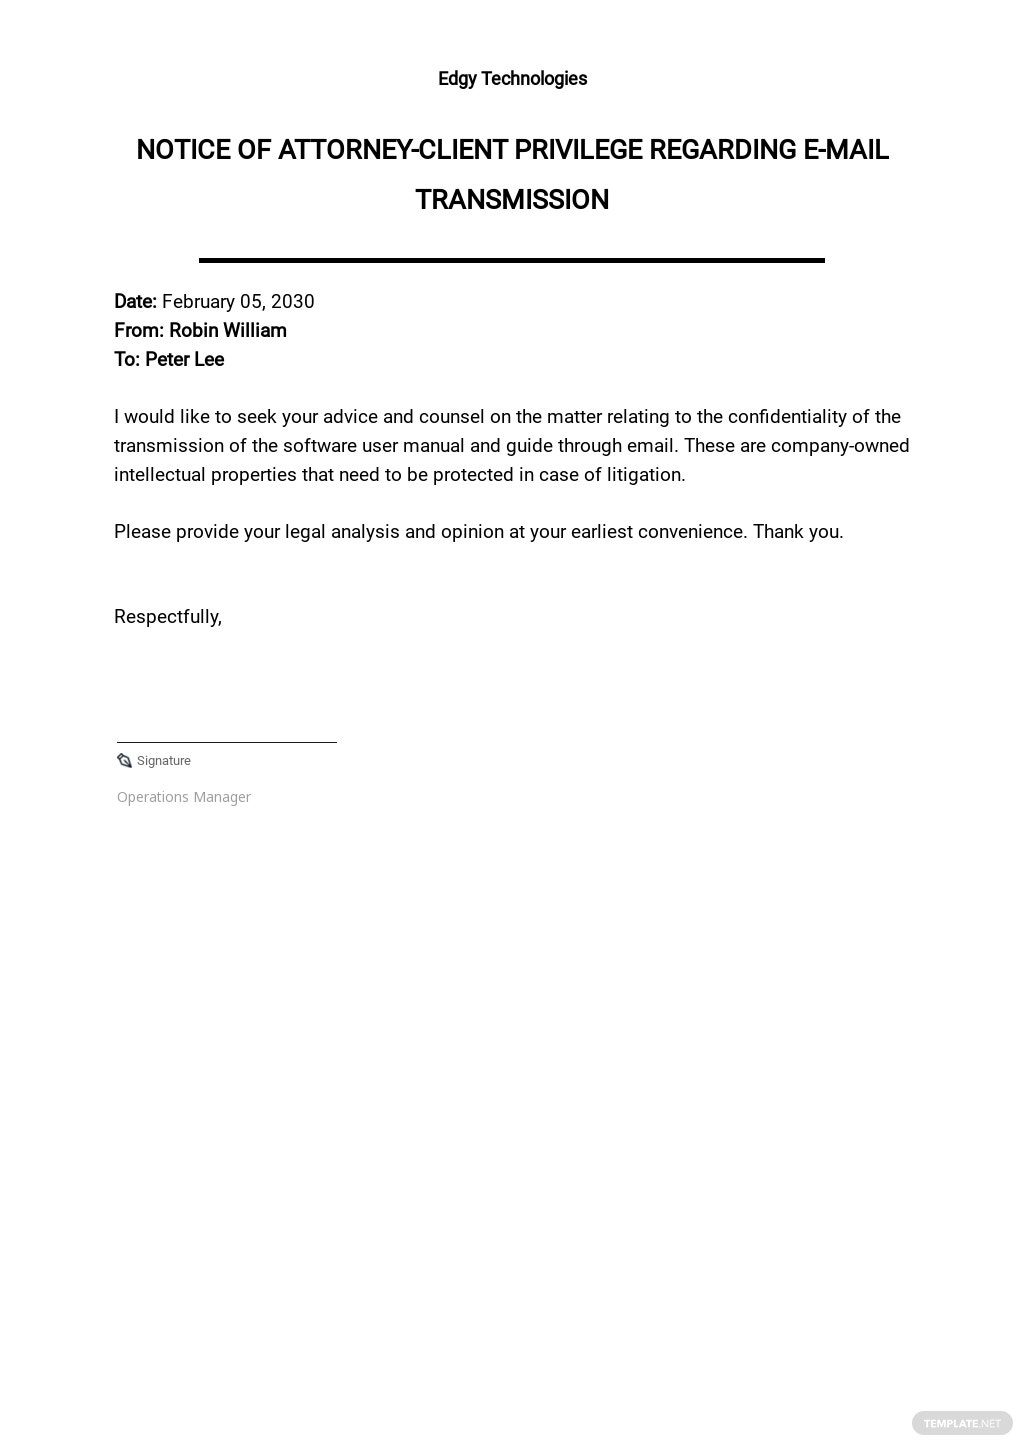 Notice of Attorney-Client Privilege Regarding E-Mail Transmission Template